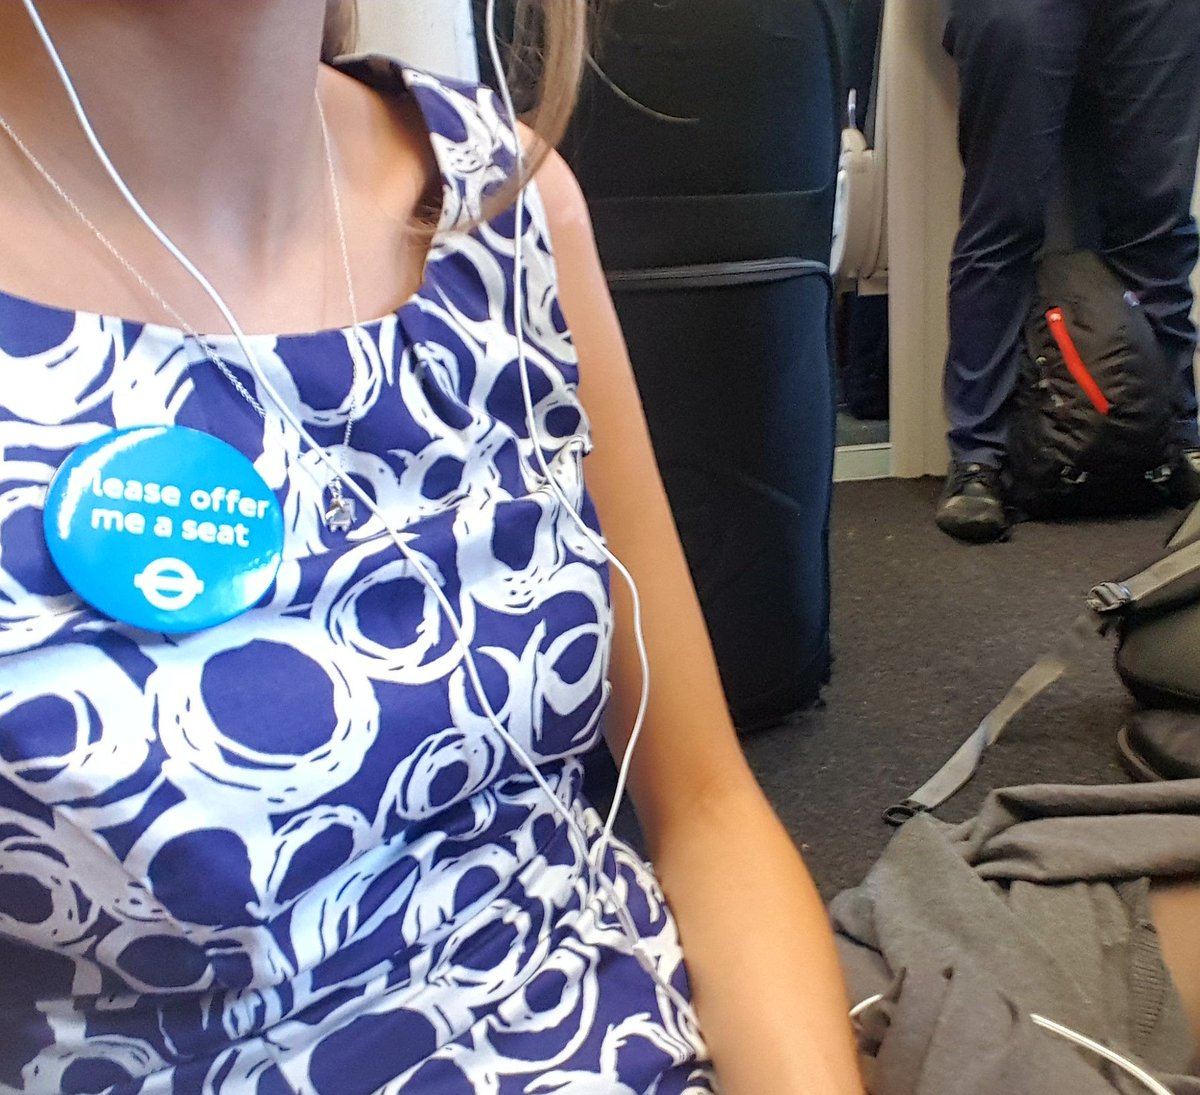 Sat on floor of packed train, people avoiding eye contact. Dignity and respect for disabled people is hard to come by. #EhlersDanlos #EDS <br>http://pic.twitter.com/0fZfXPVkhh